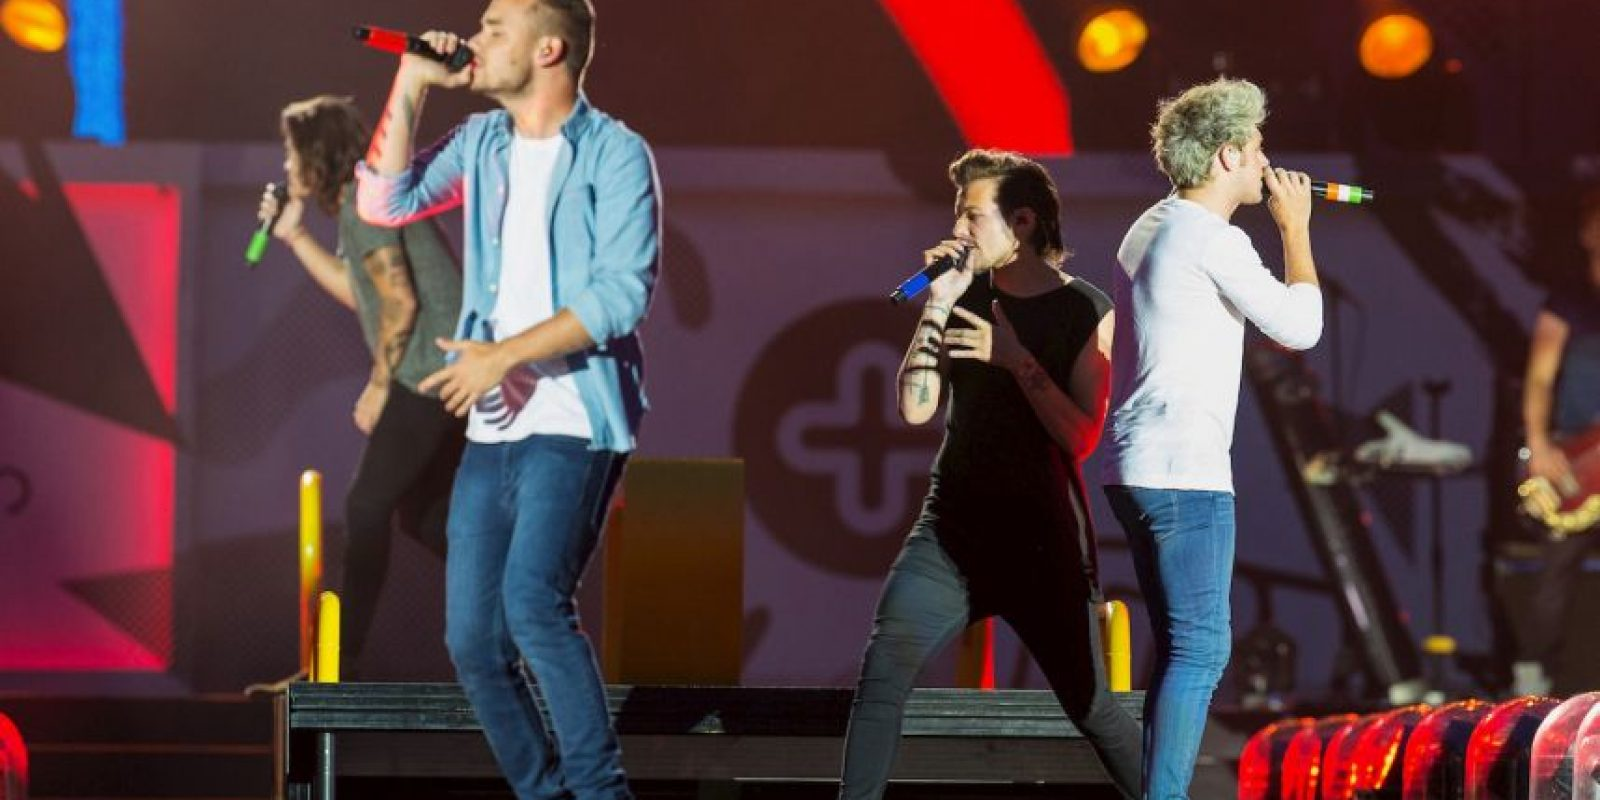 Los integrantes de One Direction han desmostrado lo bien que se llevan. Foto: Getty Images